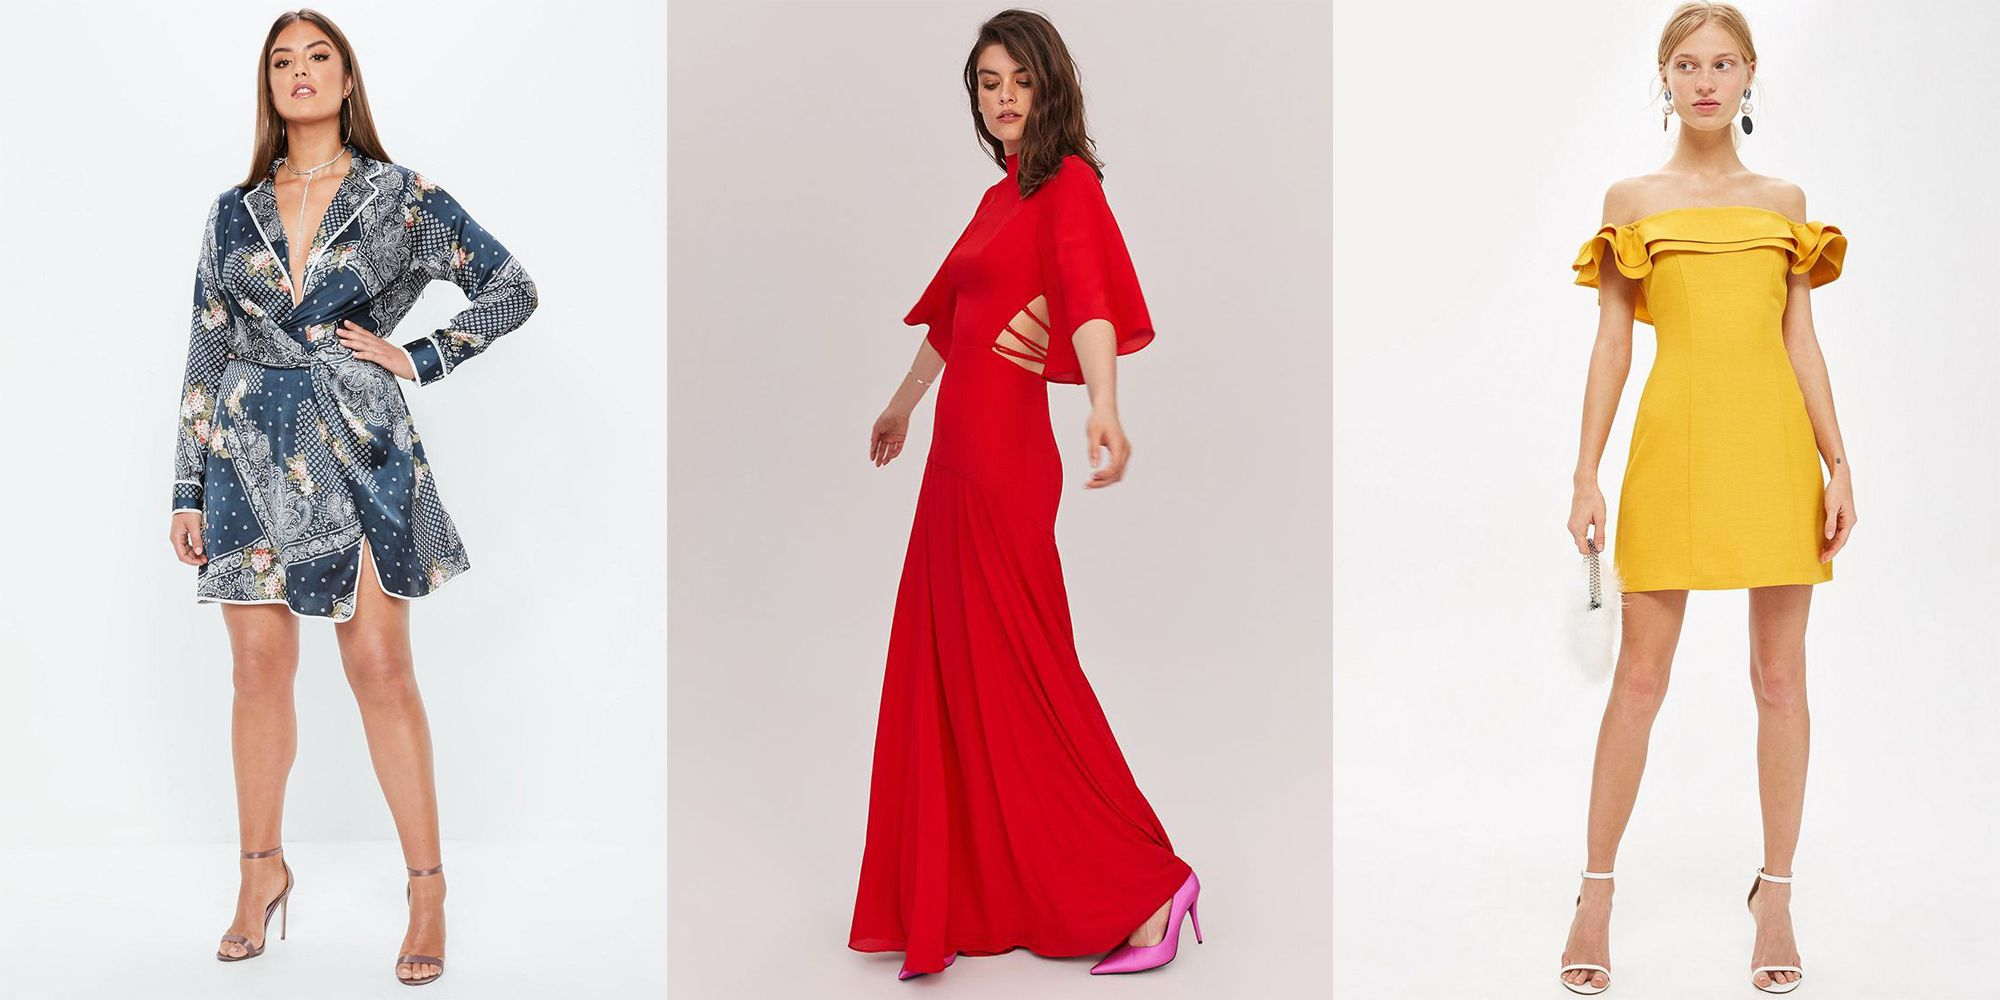 17 Fall Wedding Guest Dresses — What to Wear to a Fall Wedding